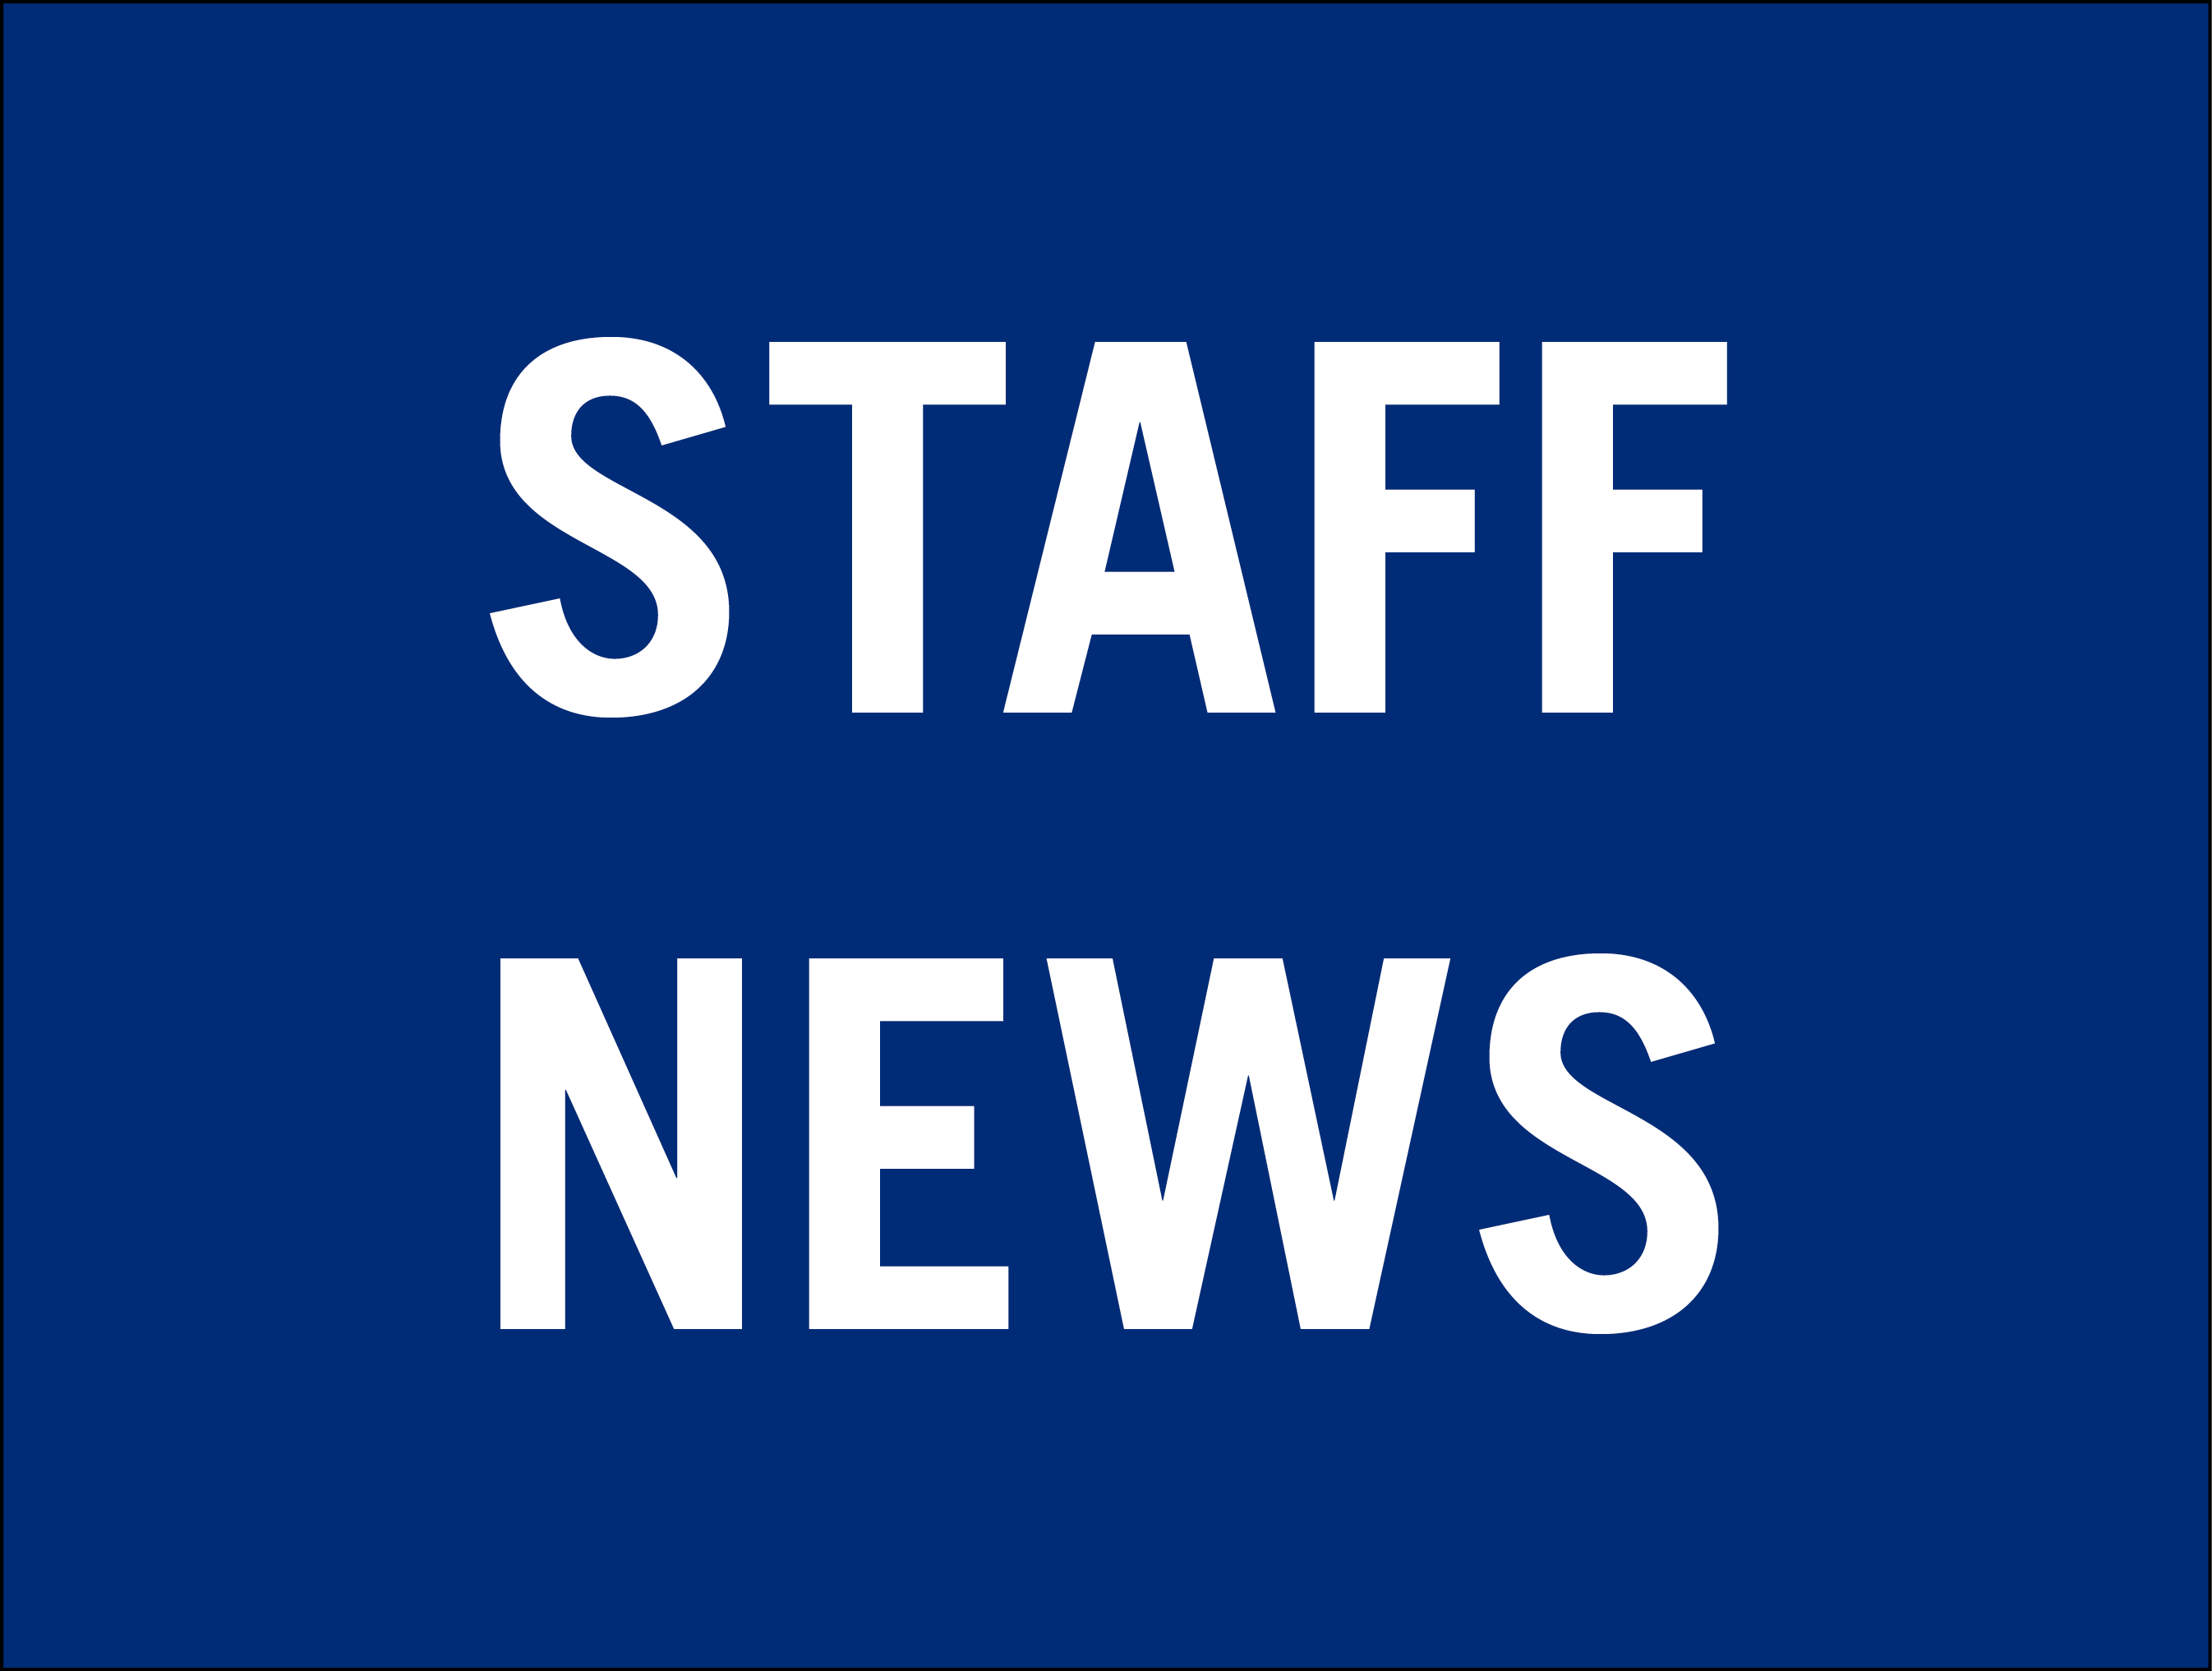 """staff news"" in white letters on a blue background"